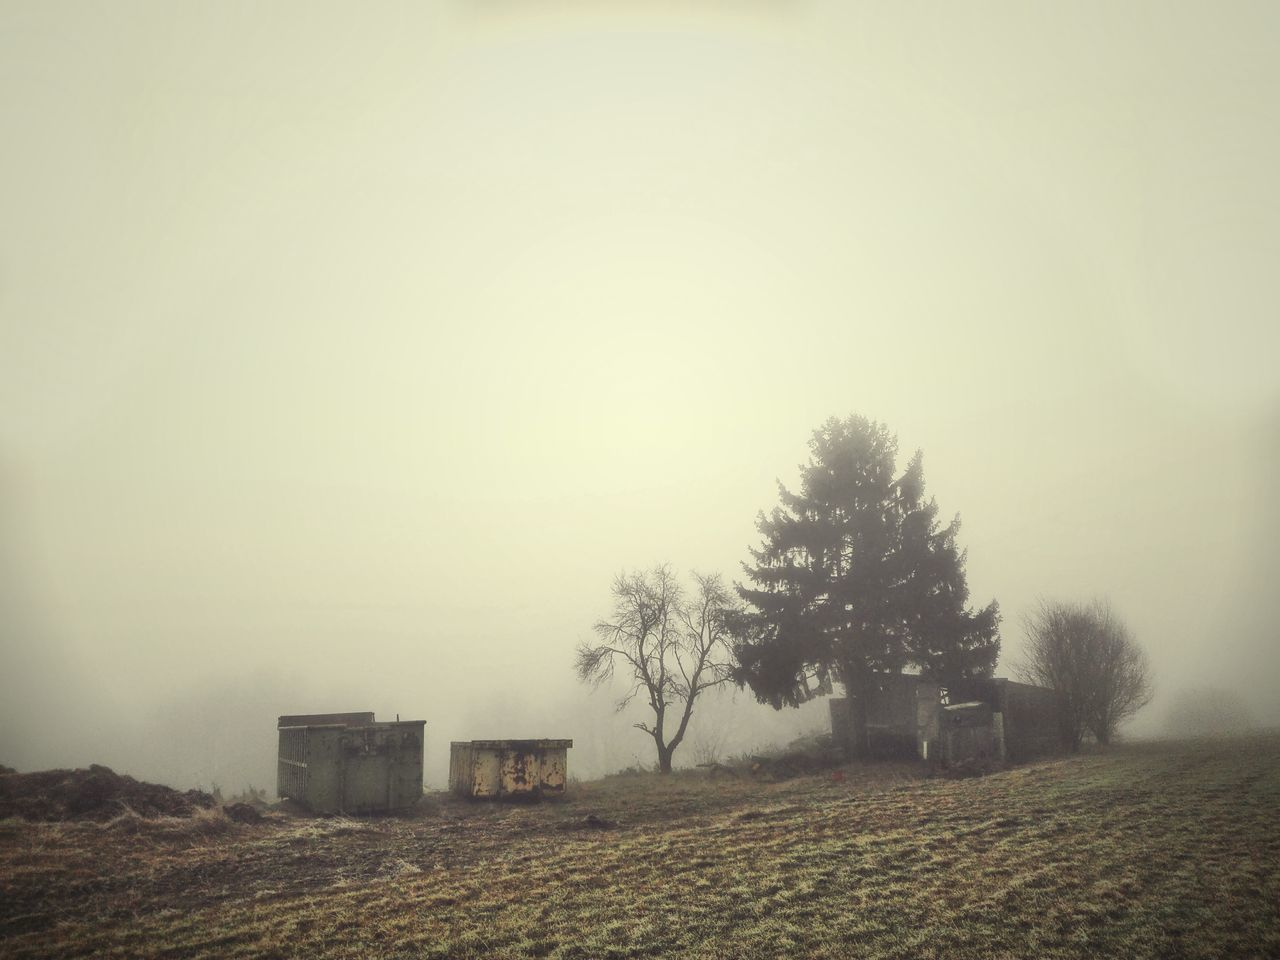 Tree Fog Nature Tranquility No People Tranquil Scene Outdoors Day Sky Foggy Morning Container Barrack Lost Places